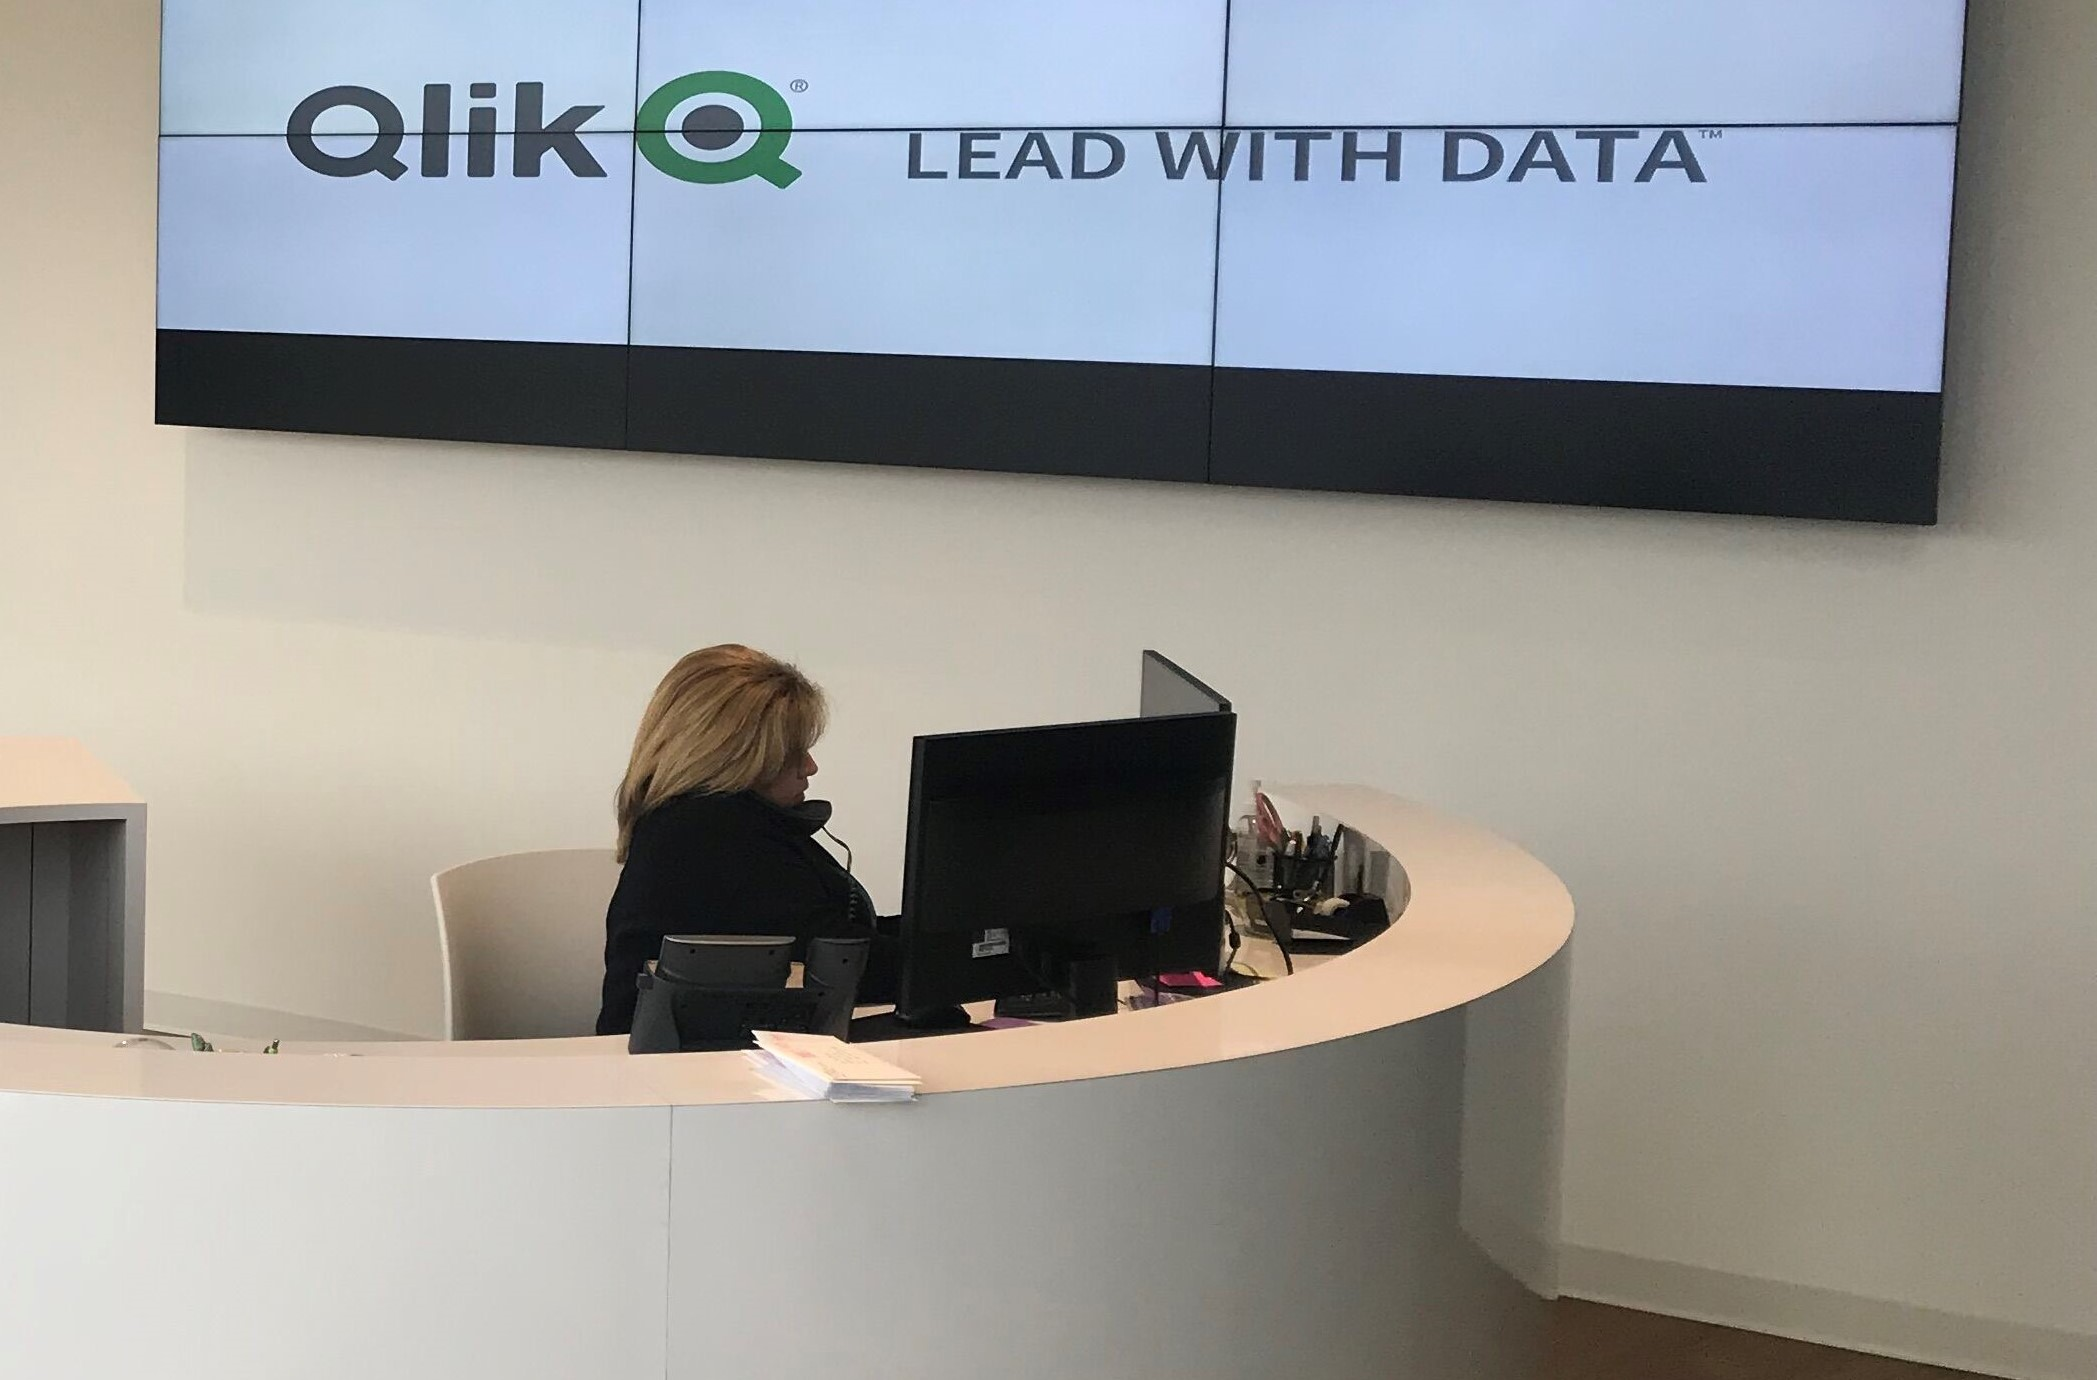 Qlik Continues to Blaze Trails with Data, Completes $560M Attunity Acquisition